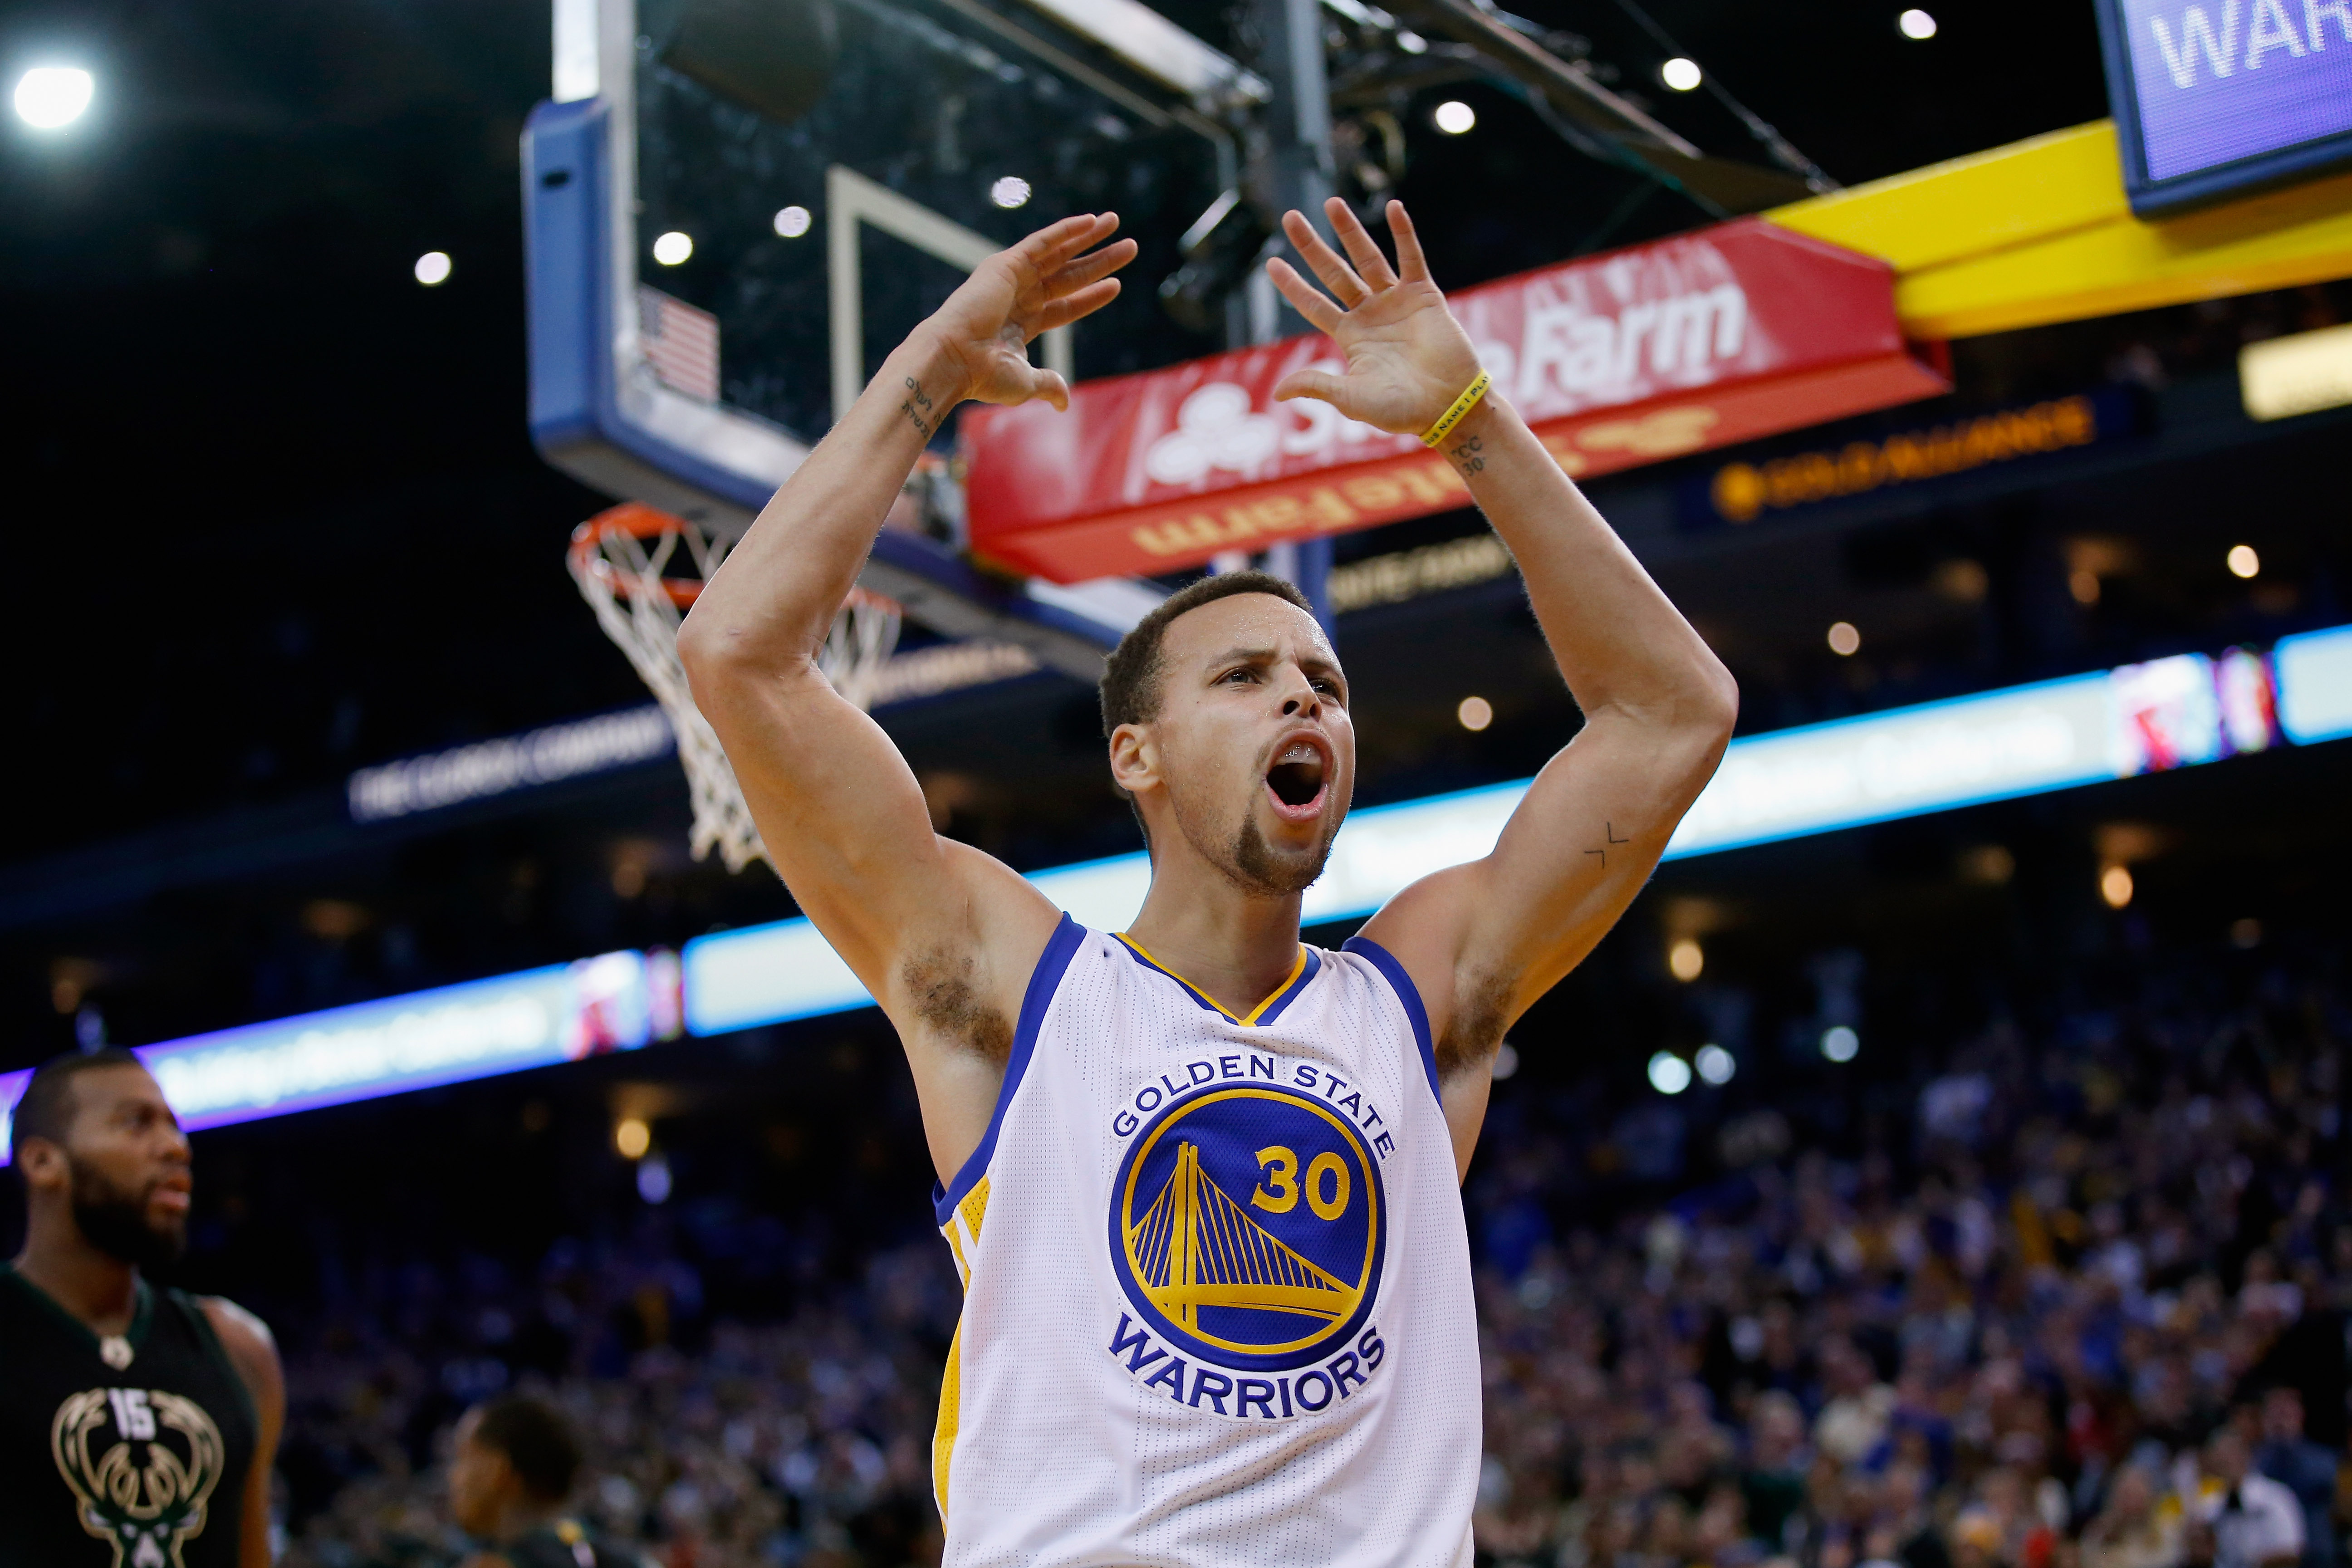 OAKLAND, CA - DECEMBER 18:  Stephen Curry #30 of the Golden State Warriors reacts towards the crowd during their game against the Milwaukee Bucks at ORACLE Arena on December 18, 2015 in Oakland, California. (Photo by Ezra Shaw/Getty Images)